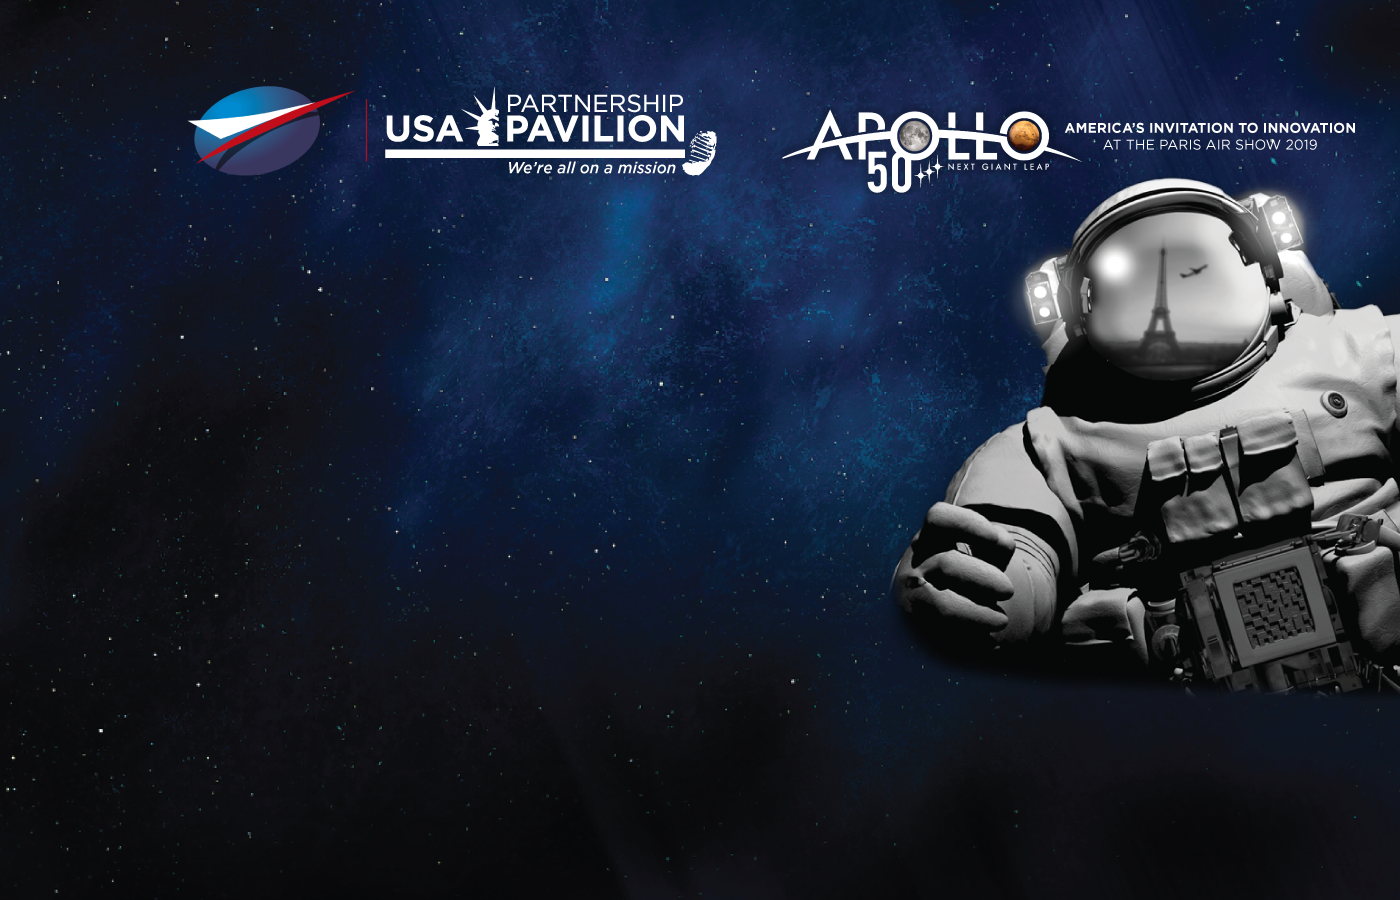 Paris Air Show 2019 USA Partnership Pavilion Apollo 50 Mission